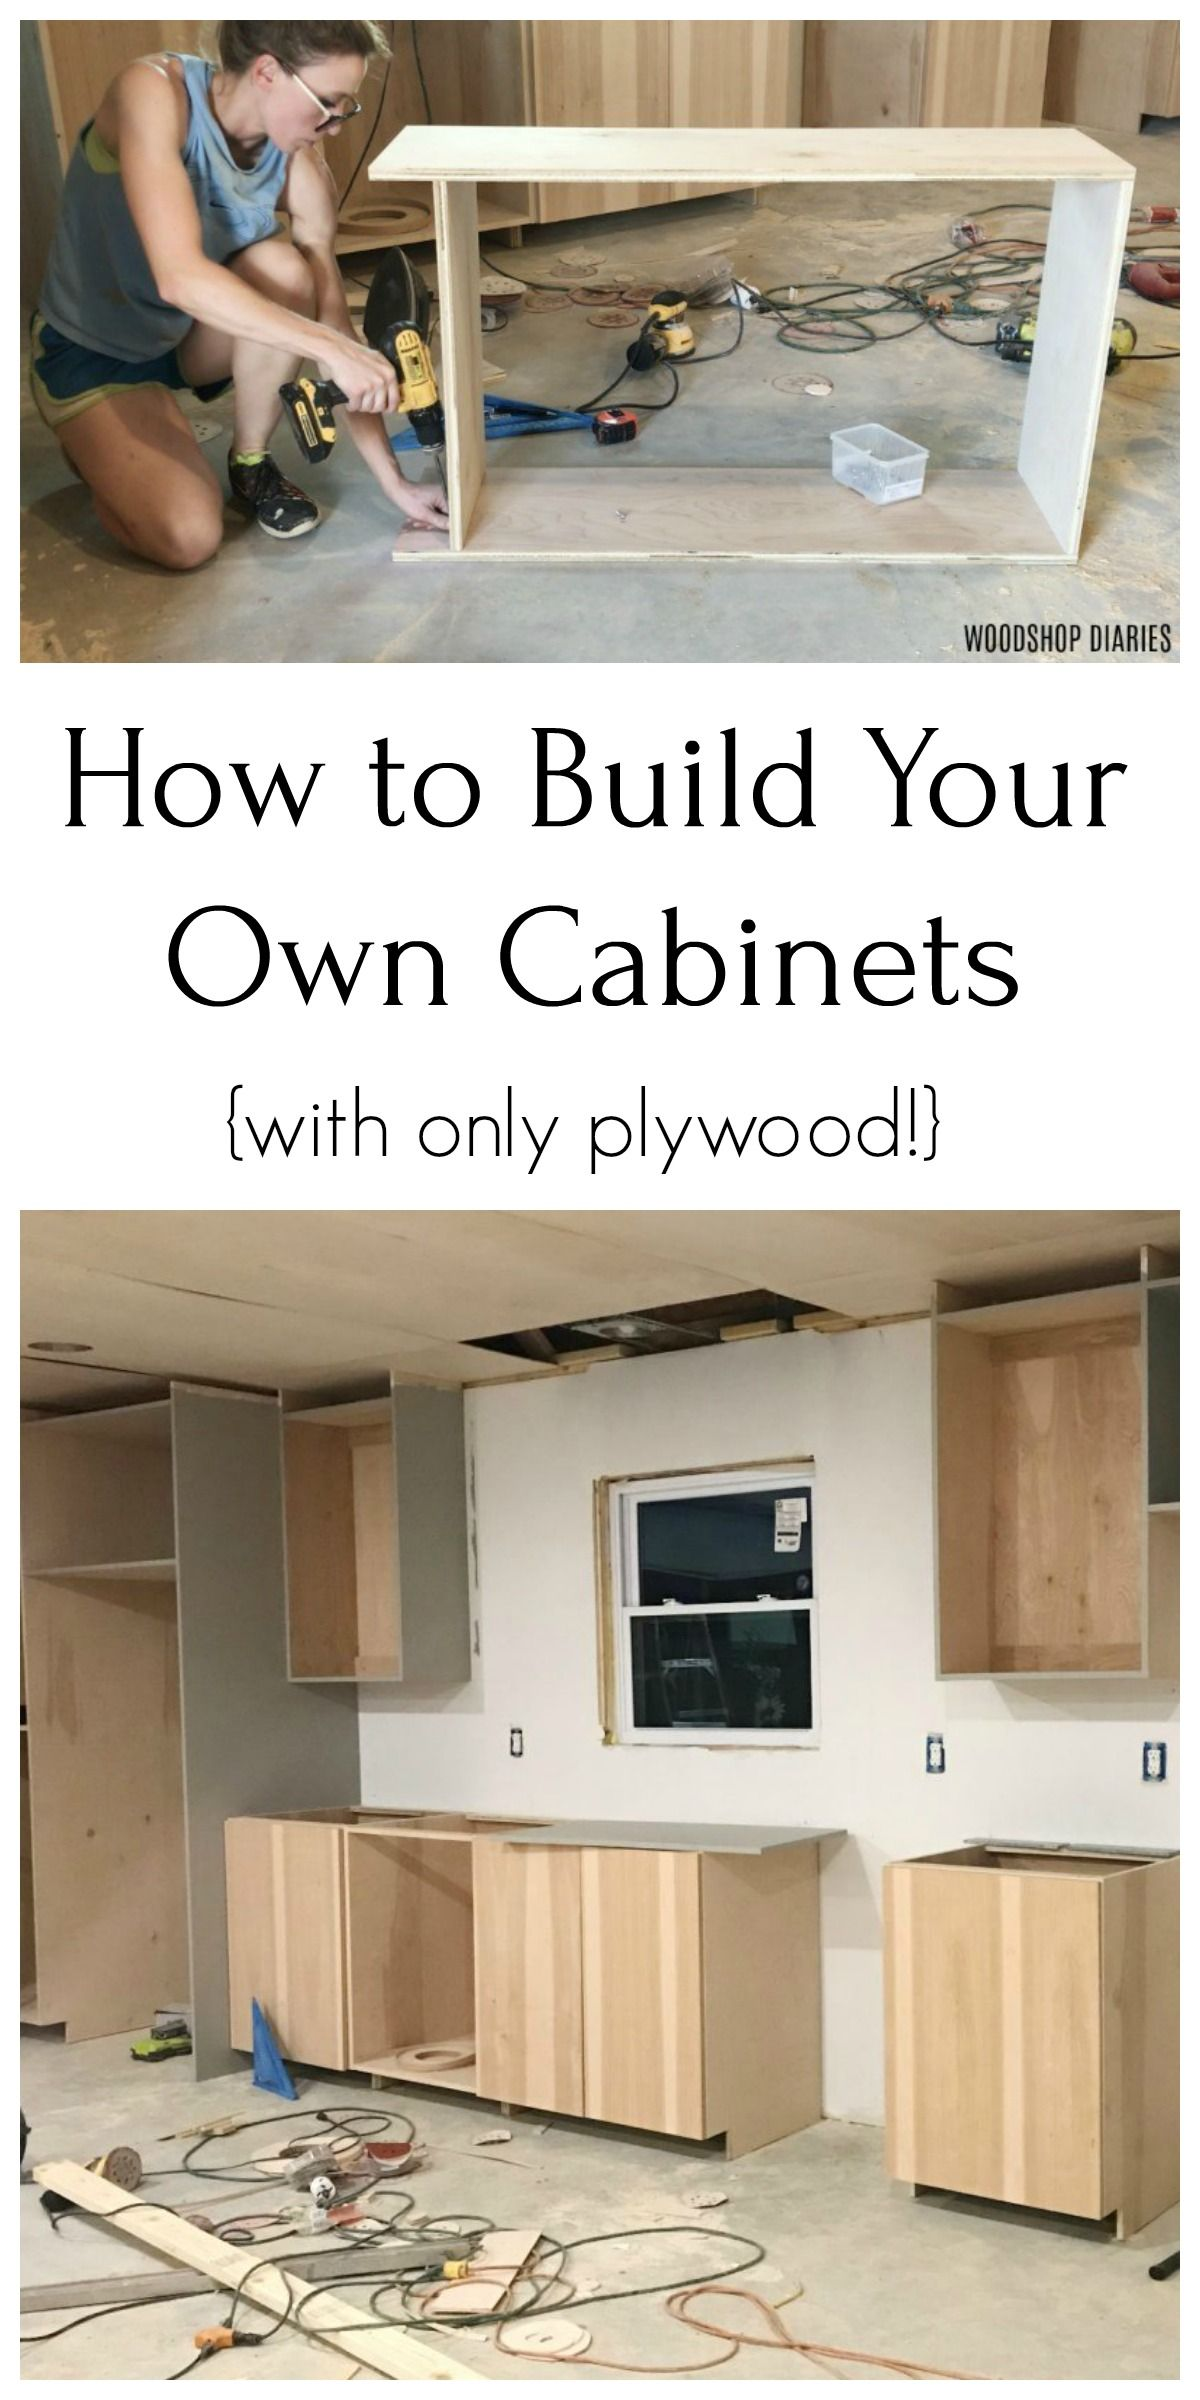 How To Build Your Own Diy Kitchen Cabinets From Only Plywood